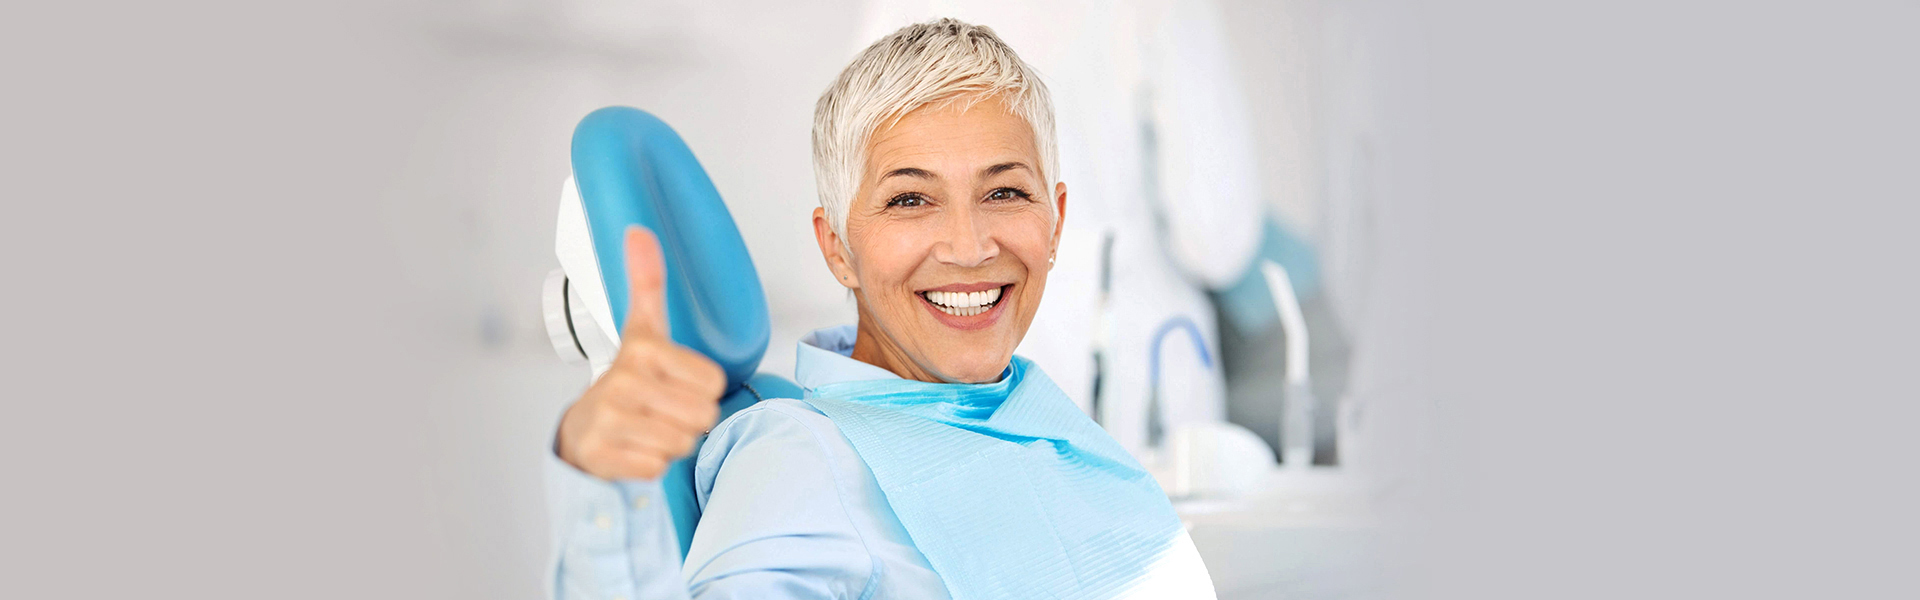 Gifting Your Mother with Dental Appointment